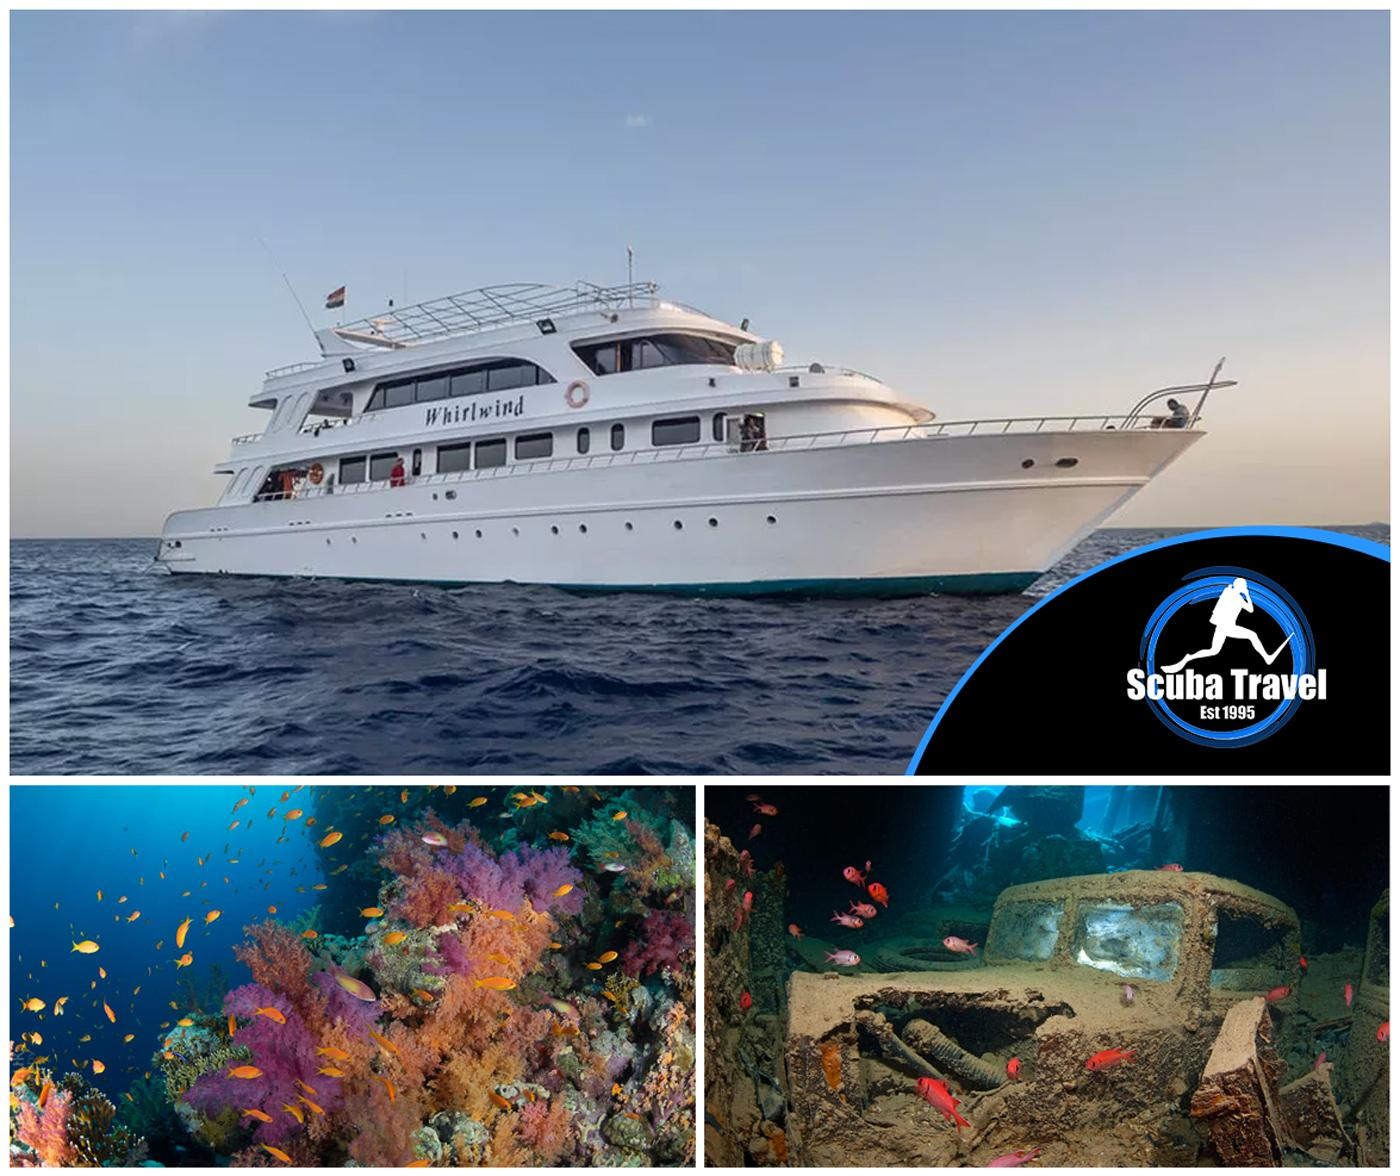 Scuba Travel, Red Sea, Whirlwind, Wrecks and Reefs